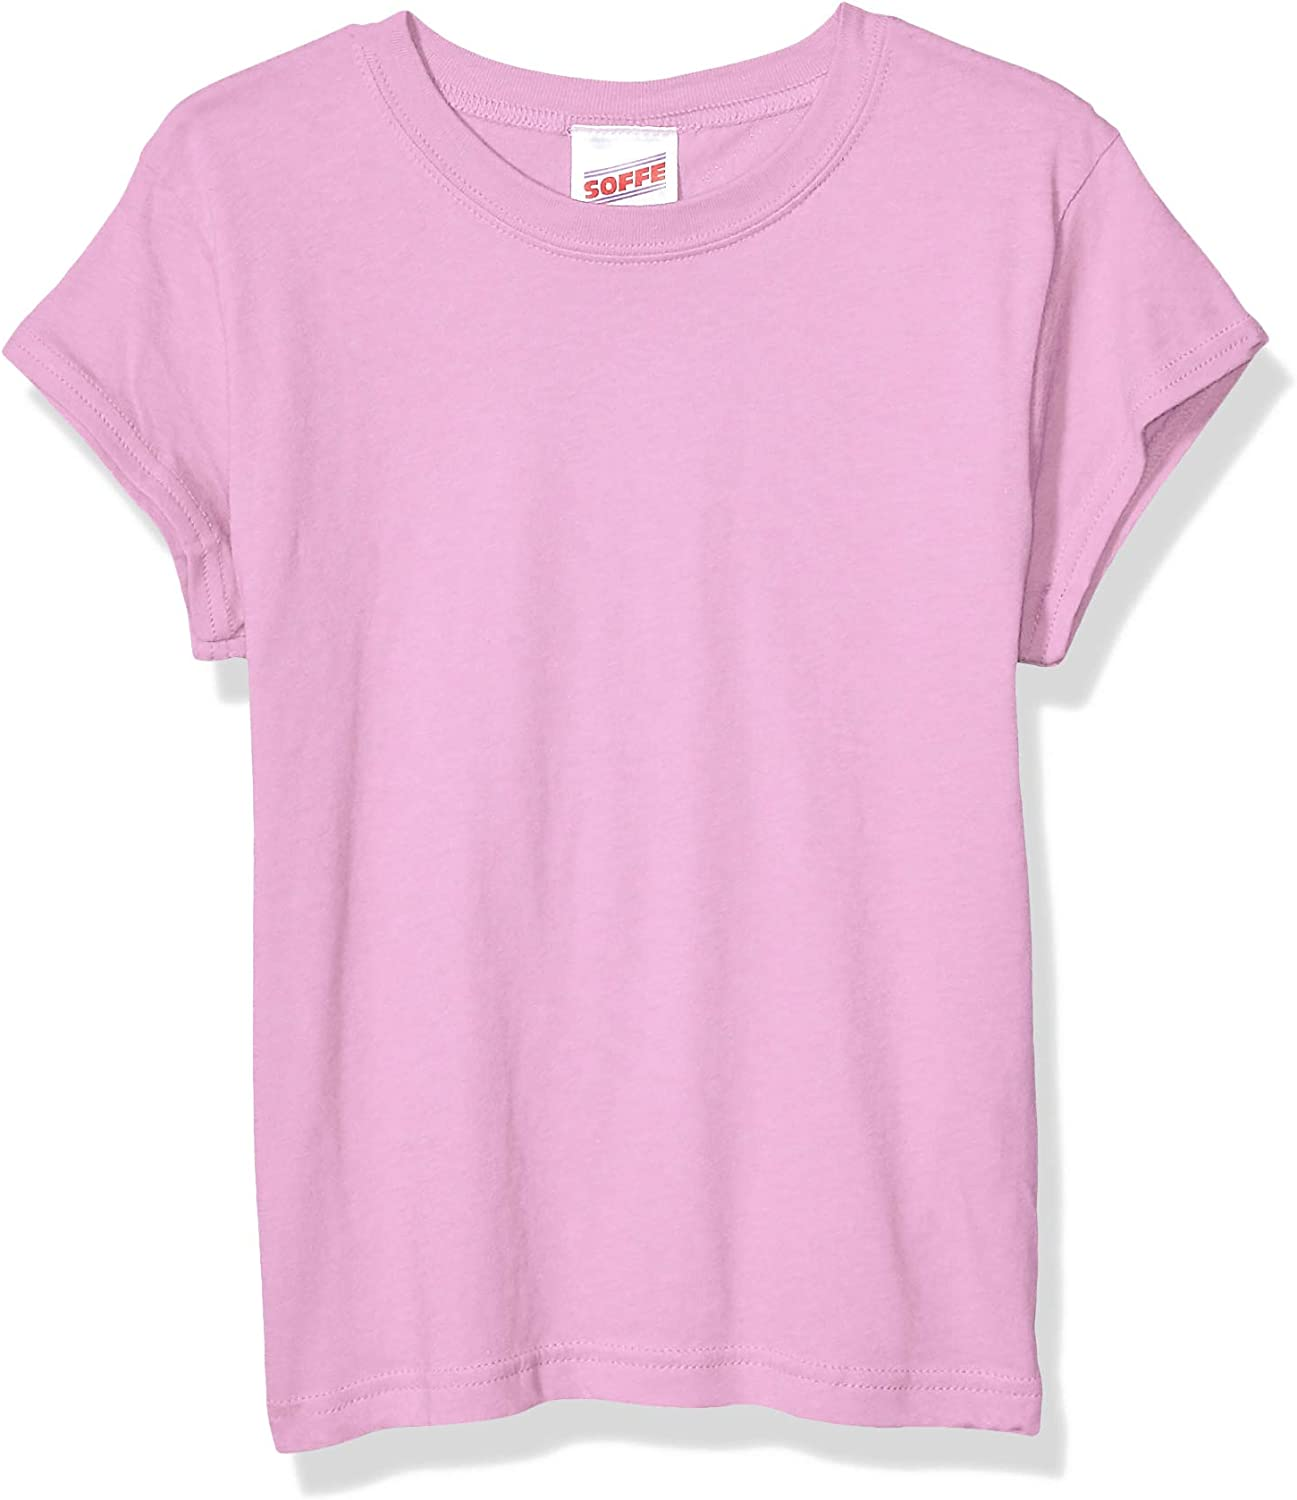 Soffe Girls' Big Short Sleeve Product Tee Selling Tissue